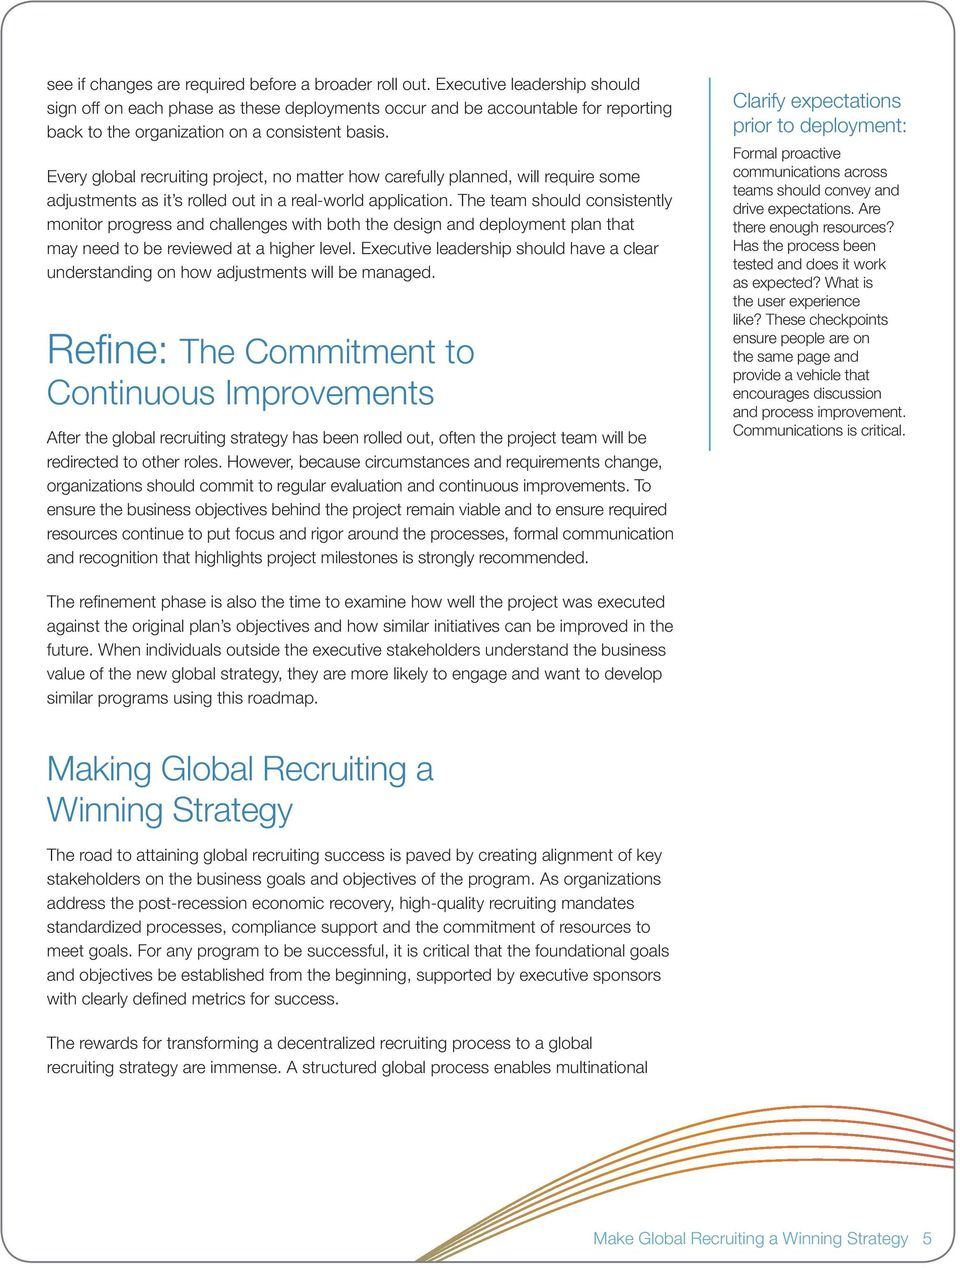 Every global recruiting project, no matter how carefully planned, will require some adjustments as it s rolled out in a real-world application.